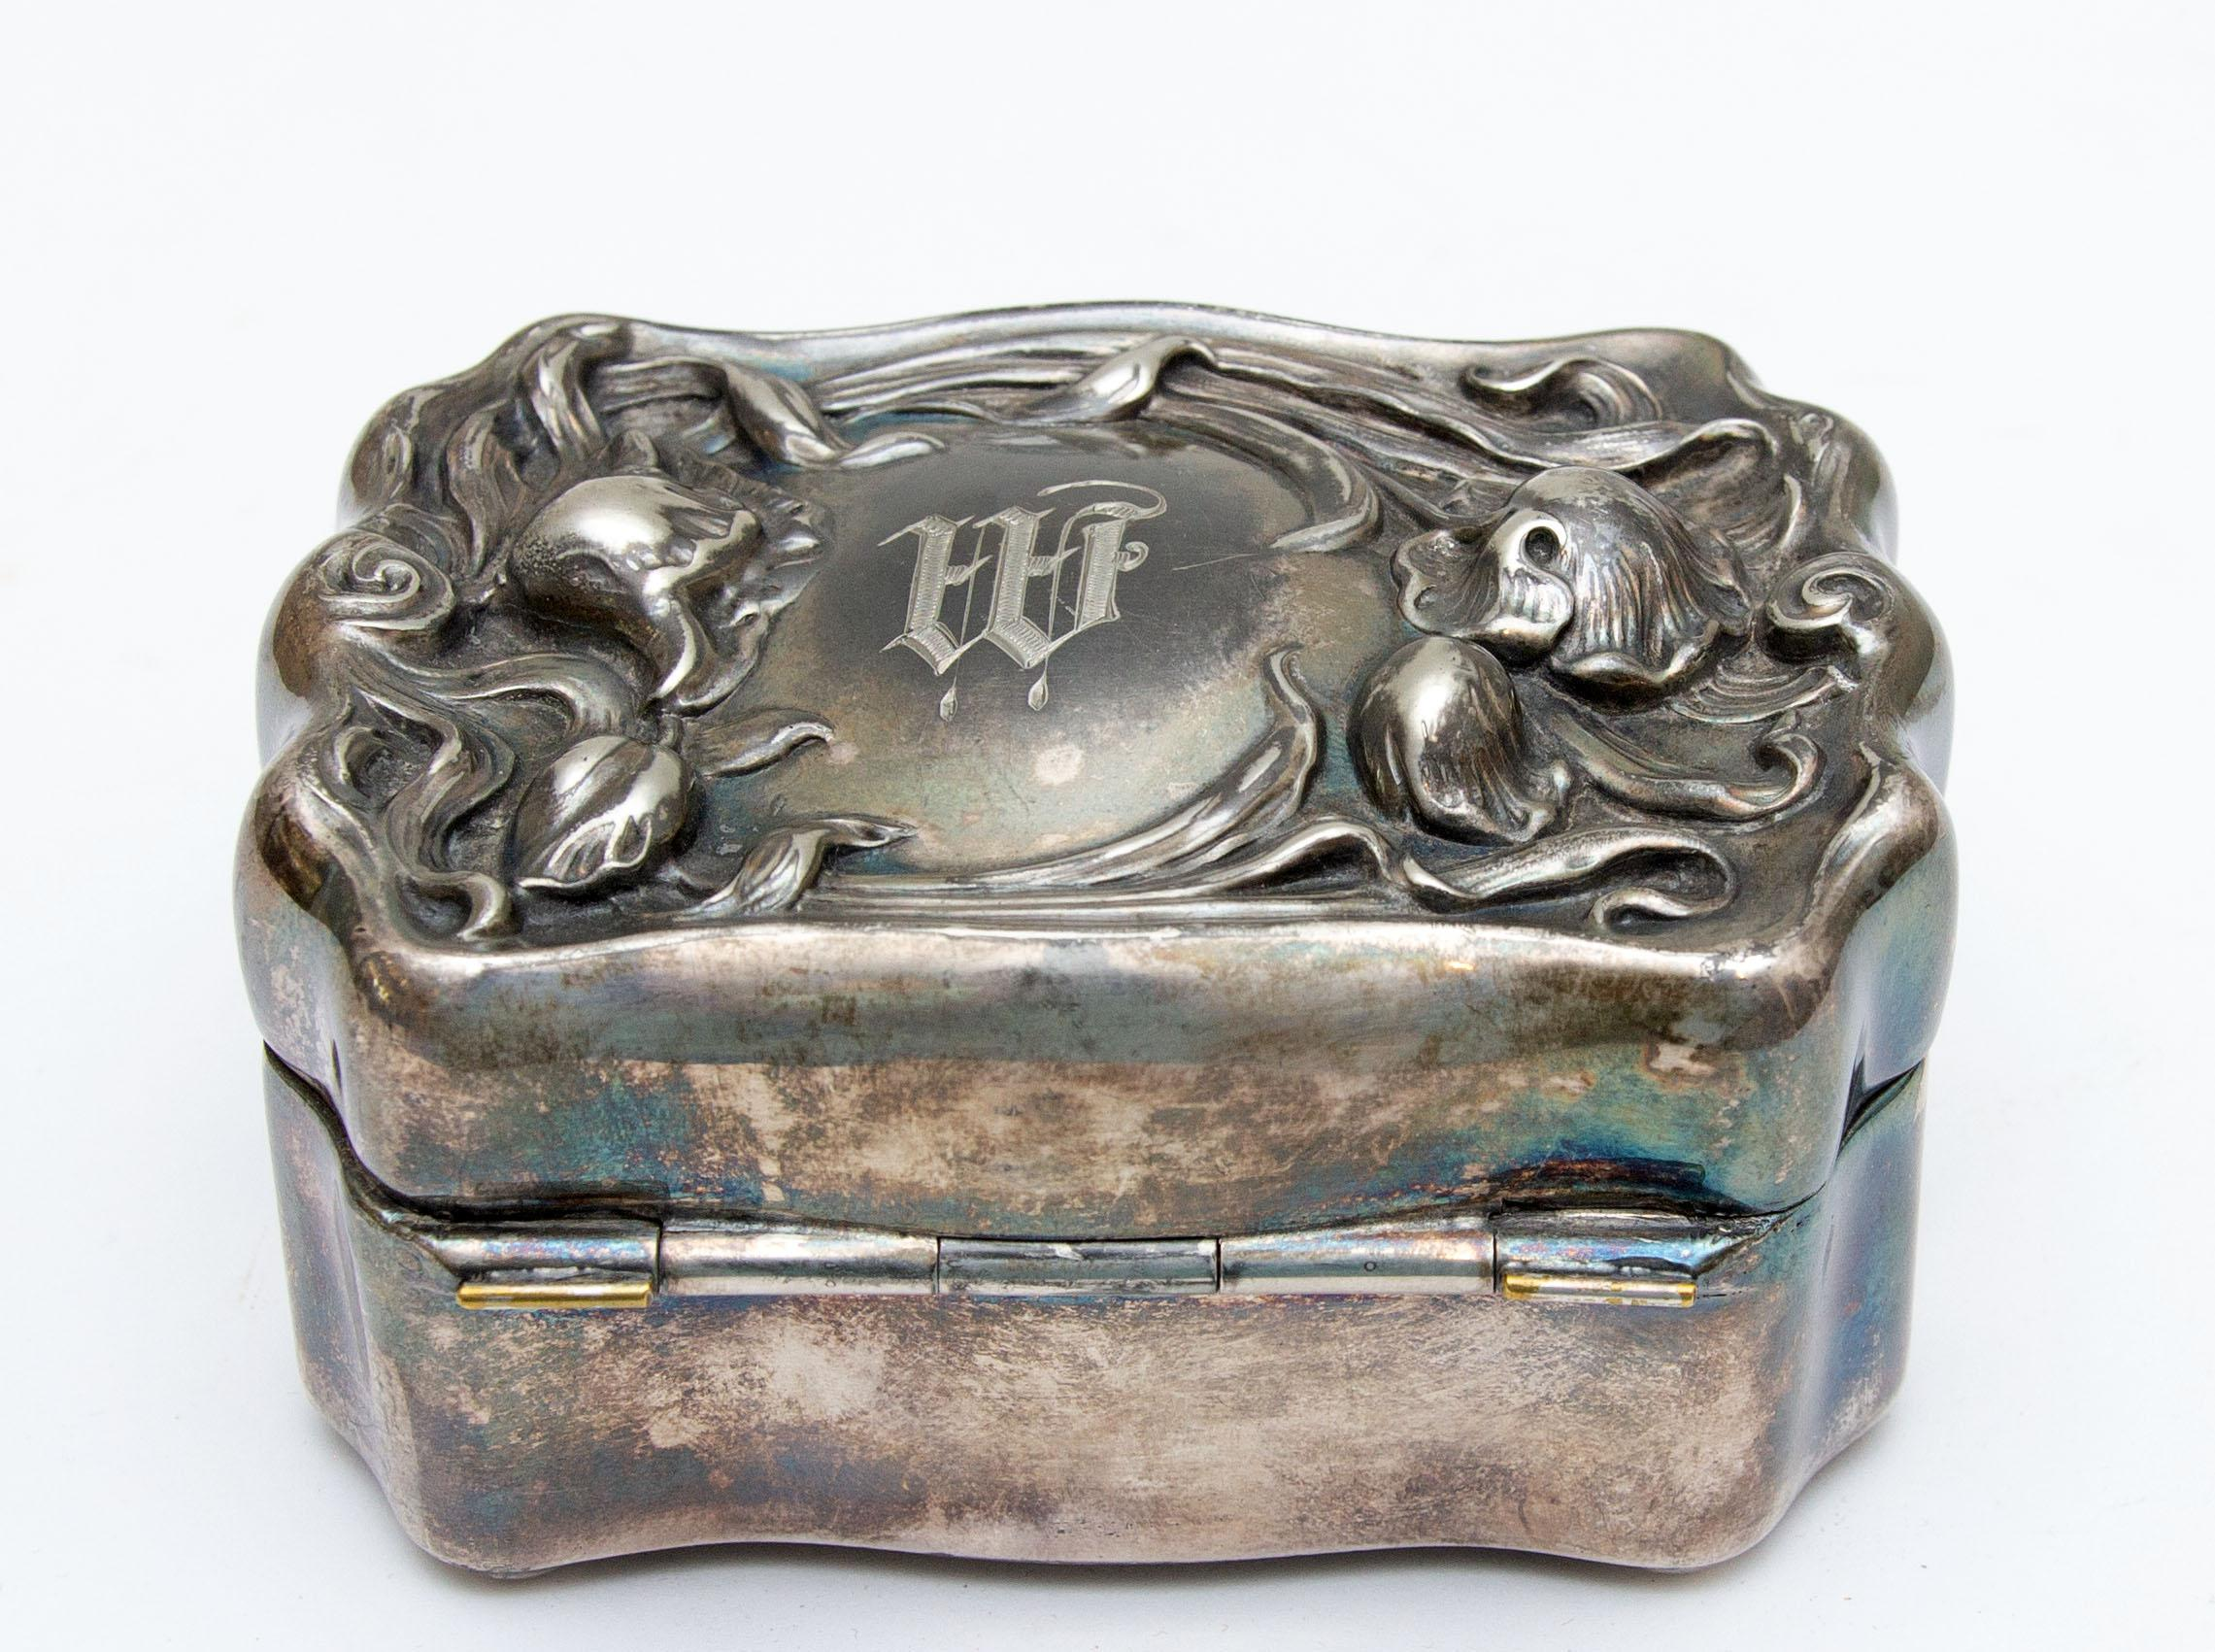 Silver plate Art Nouveau Jewelry Box    Vintage Silver Jewelry Box   Vanity Jewelry Box    Silver Anniversary Gift    25th Anniversary Gift